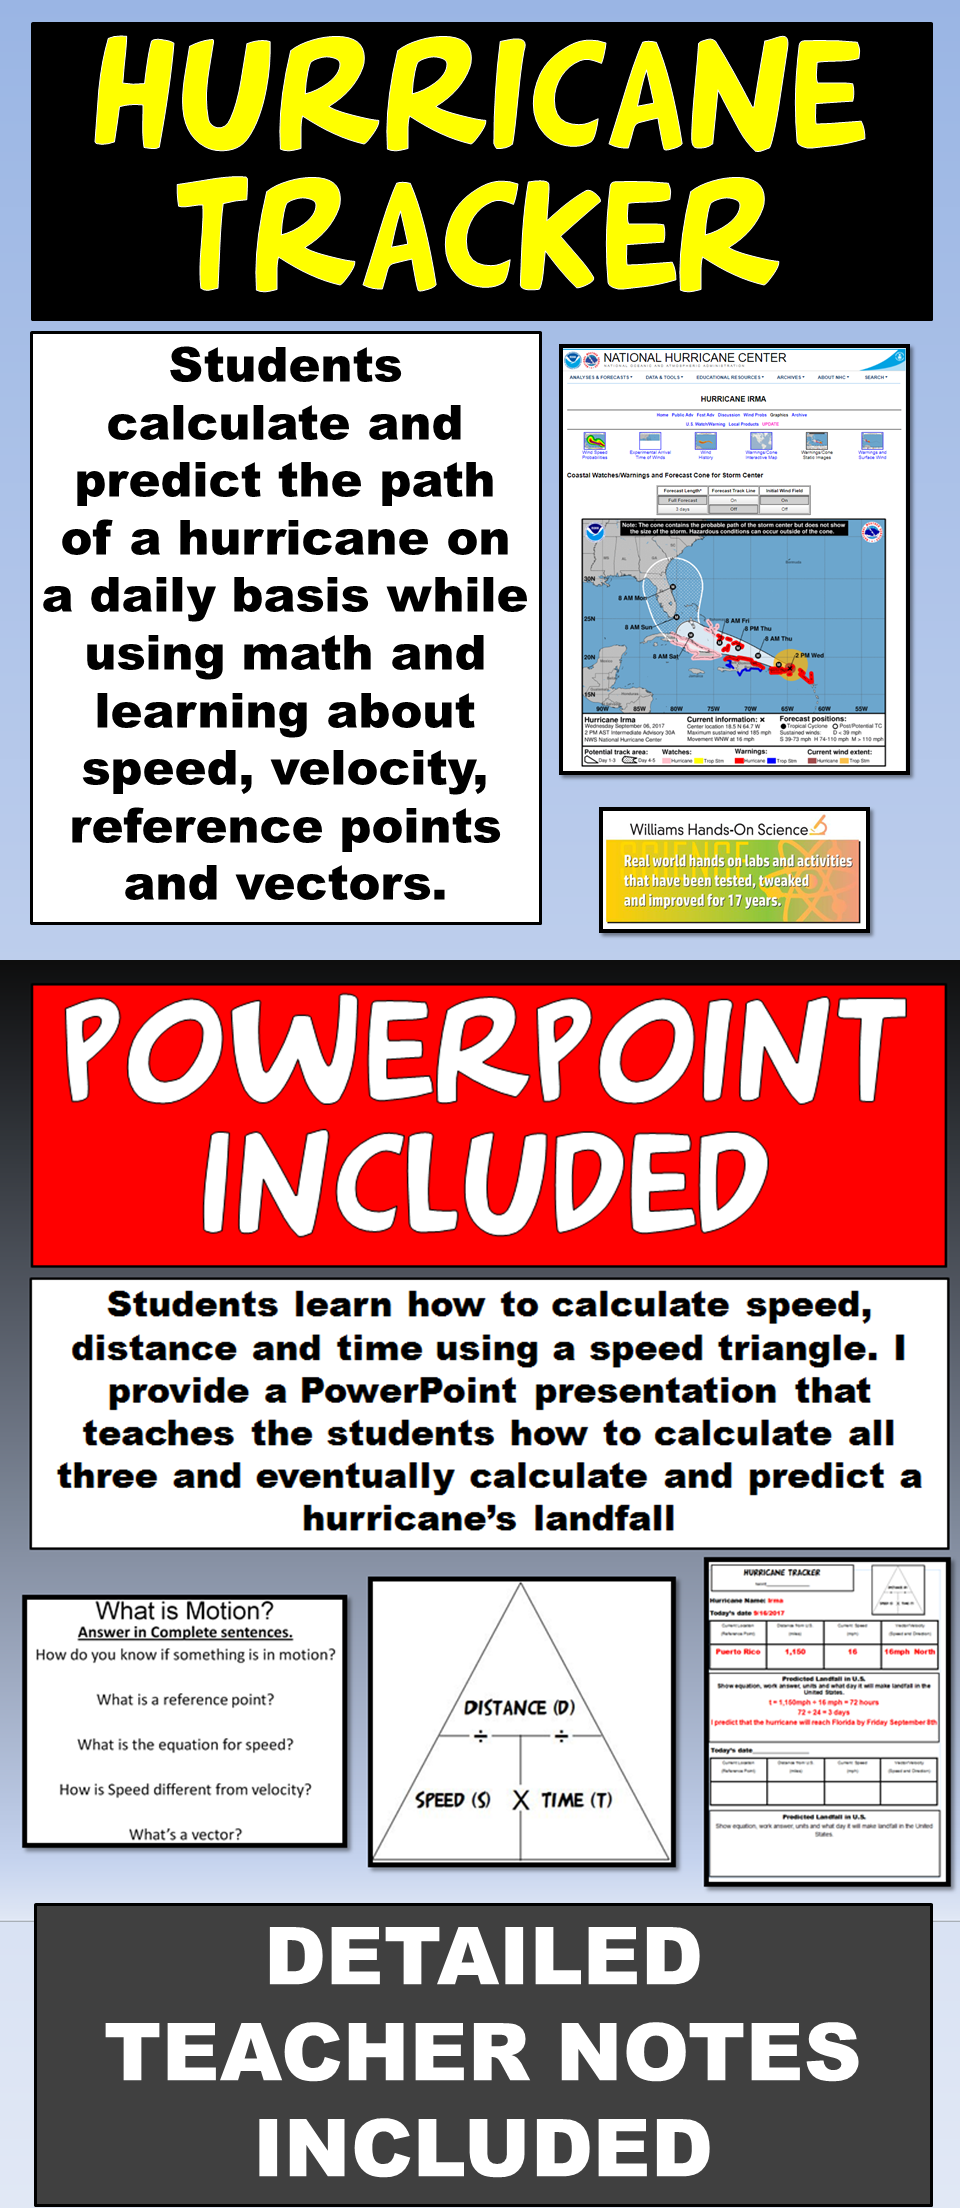 Hurricane Tracker Template Powerpoint Distance Learning School Site Teaching Fun